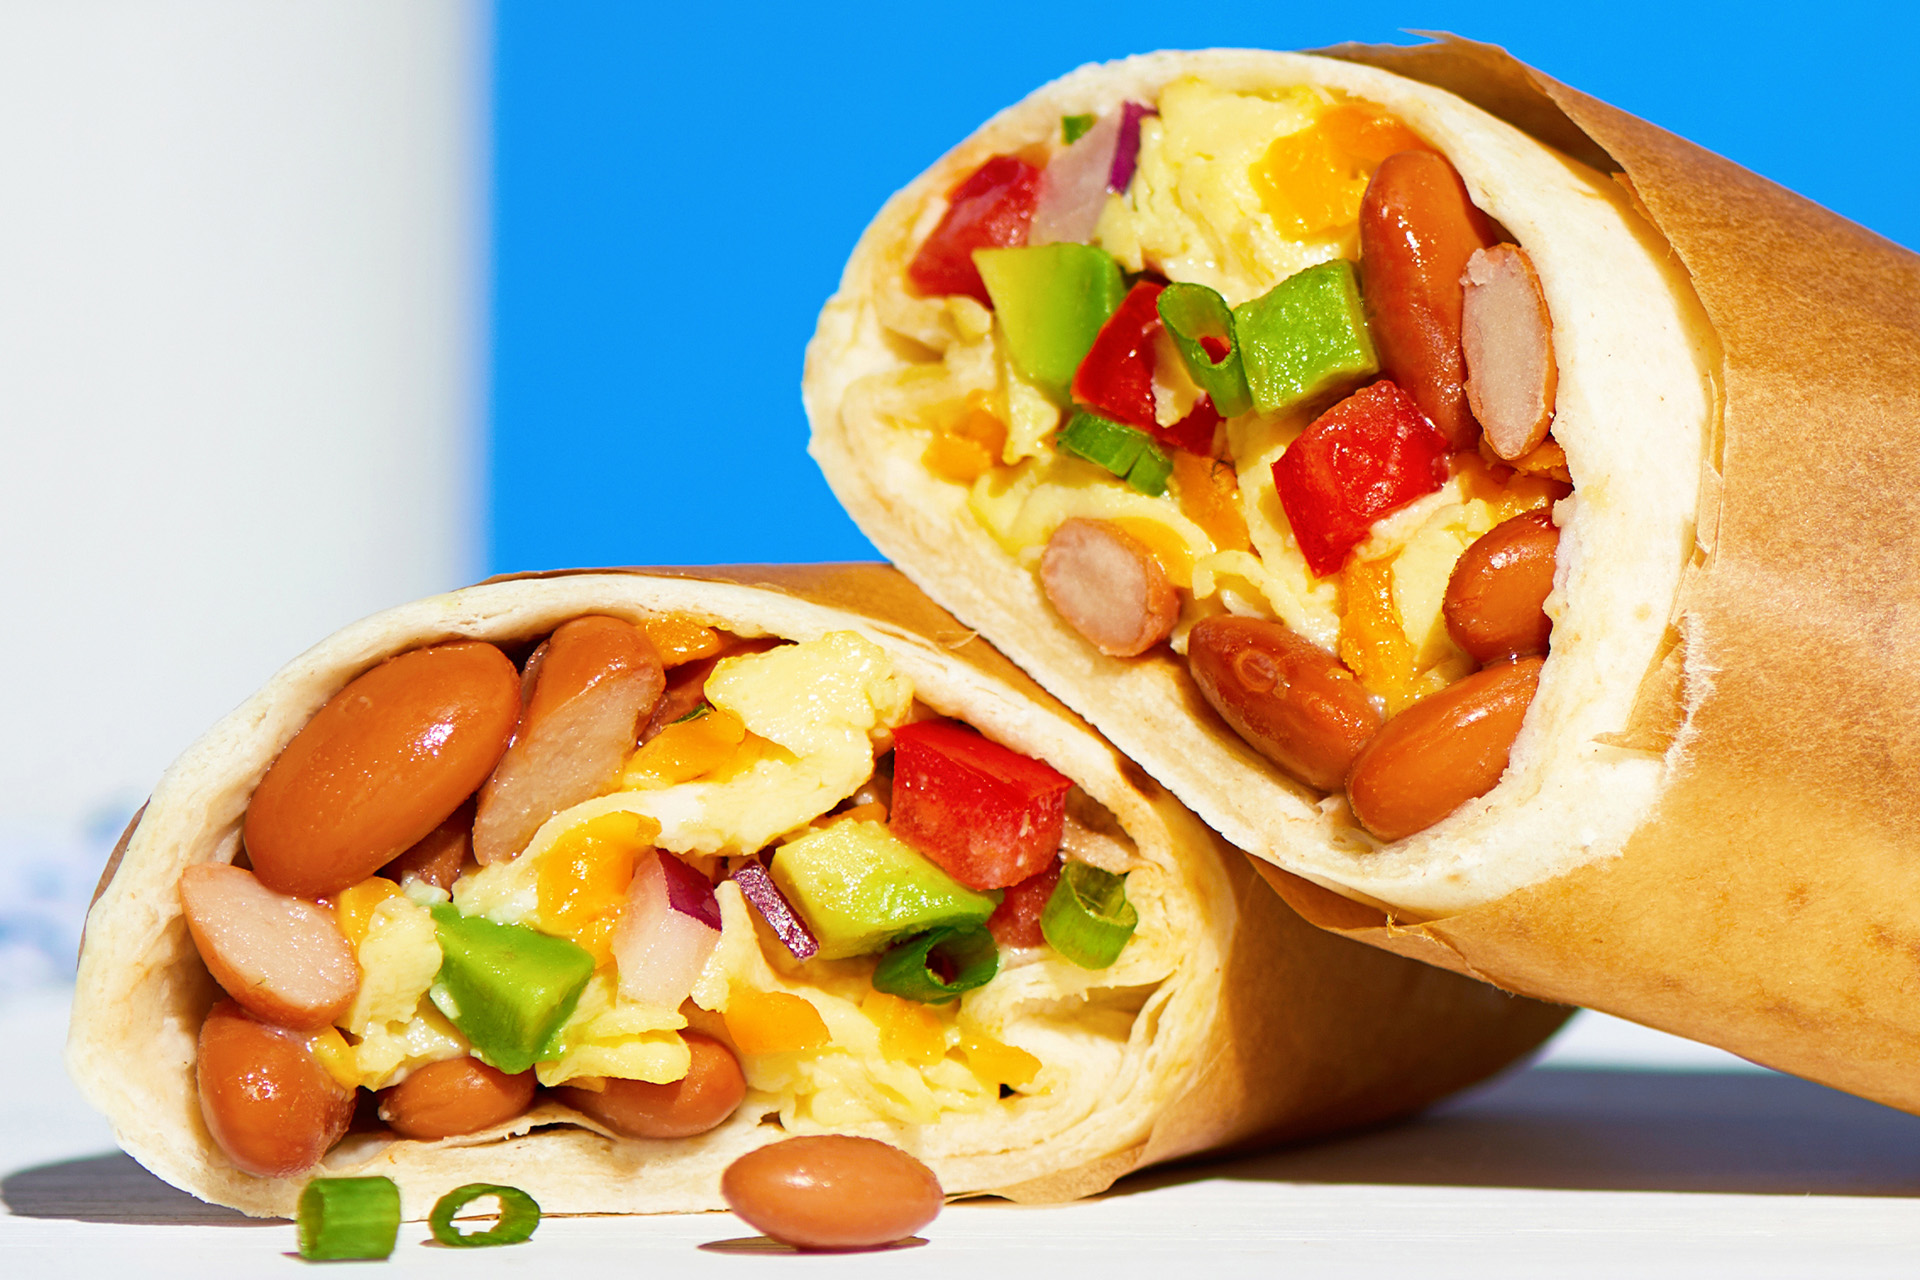 A close up of a breakfast burrito with beans, eggs, and cheese cut in half